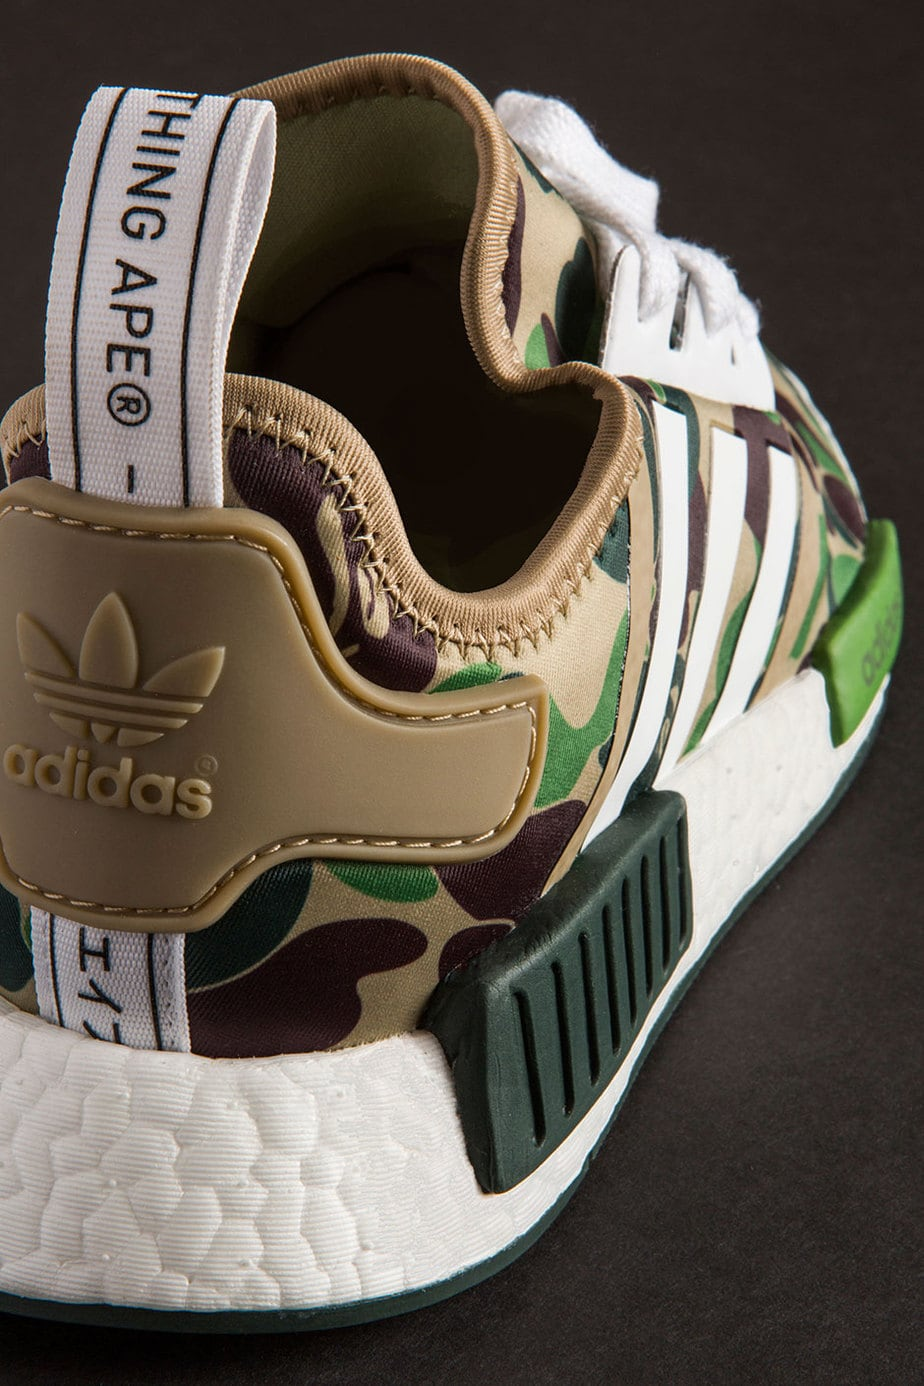 Air Max X Off White Bape X Adidas Nmd R1 Release Date Justfreshkicks